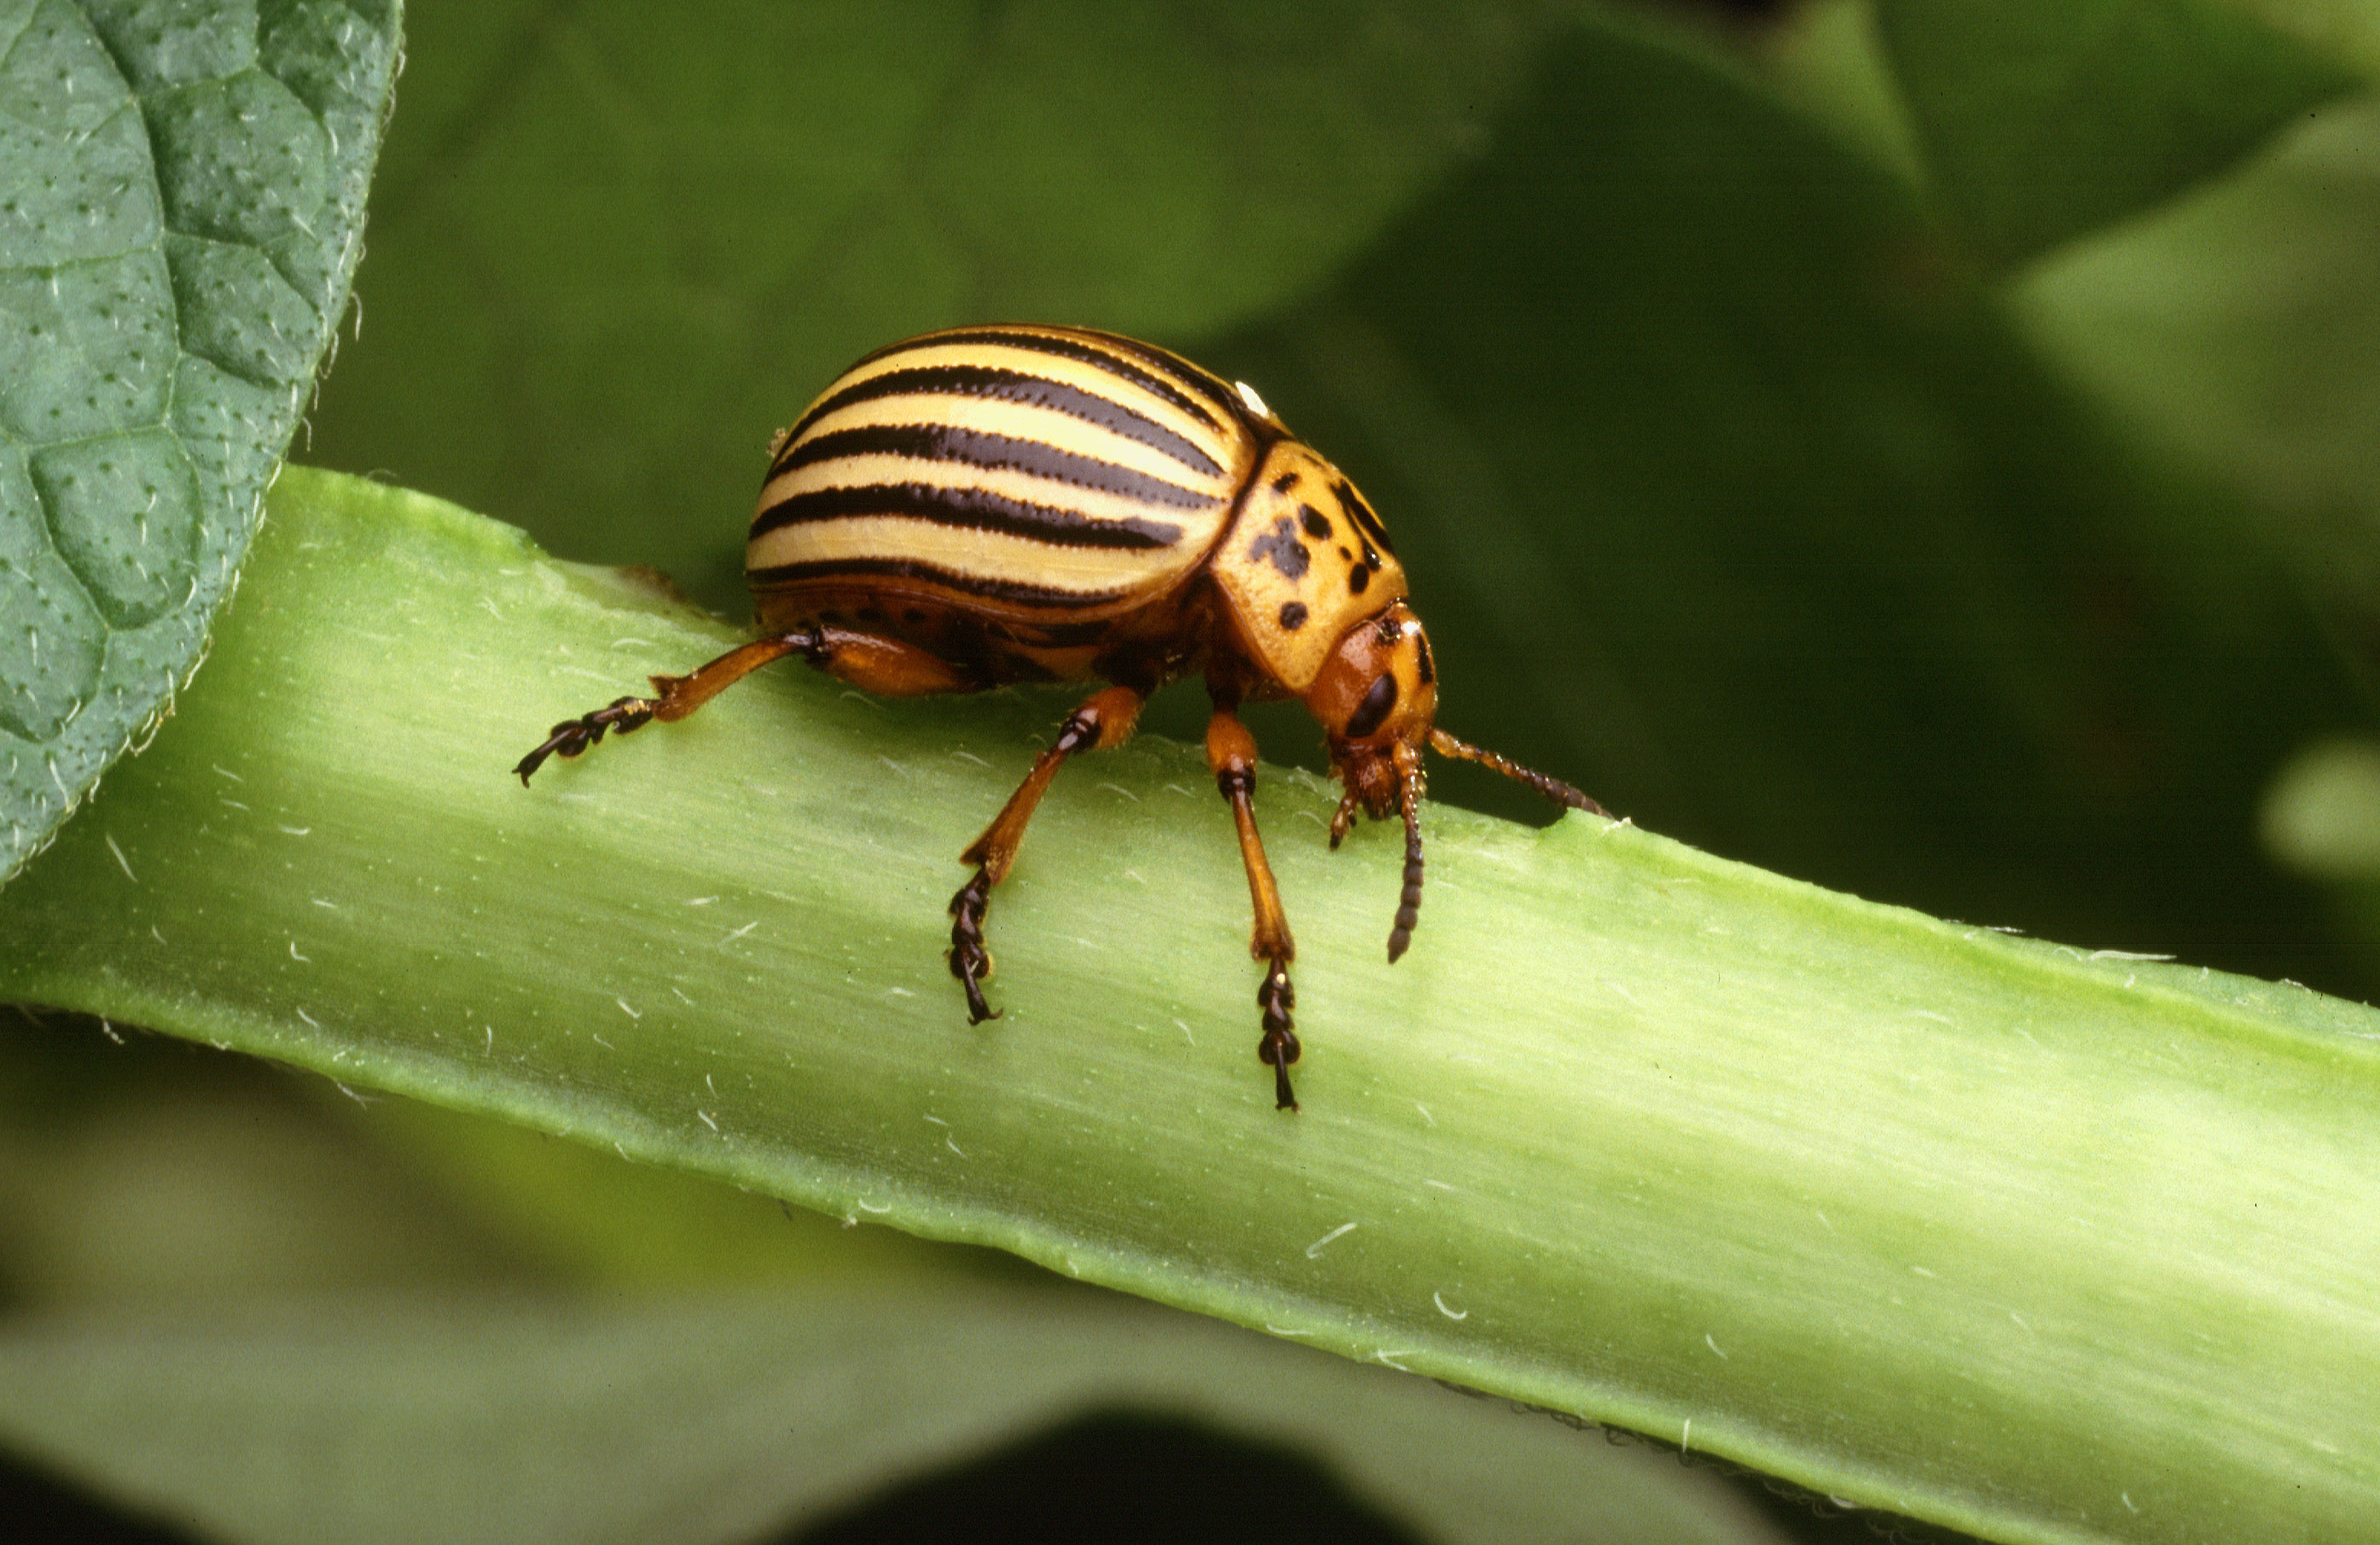 https://upload.wikimedia.org/wikipedia/commons/2/21/Colorado_potato_beetle.jpg